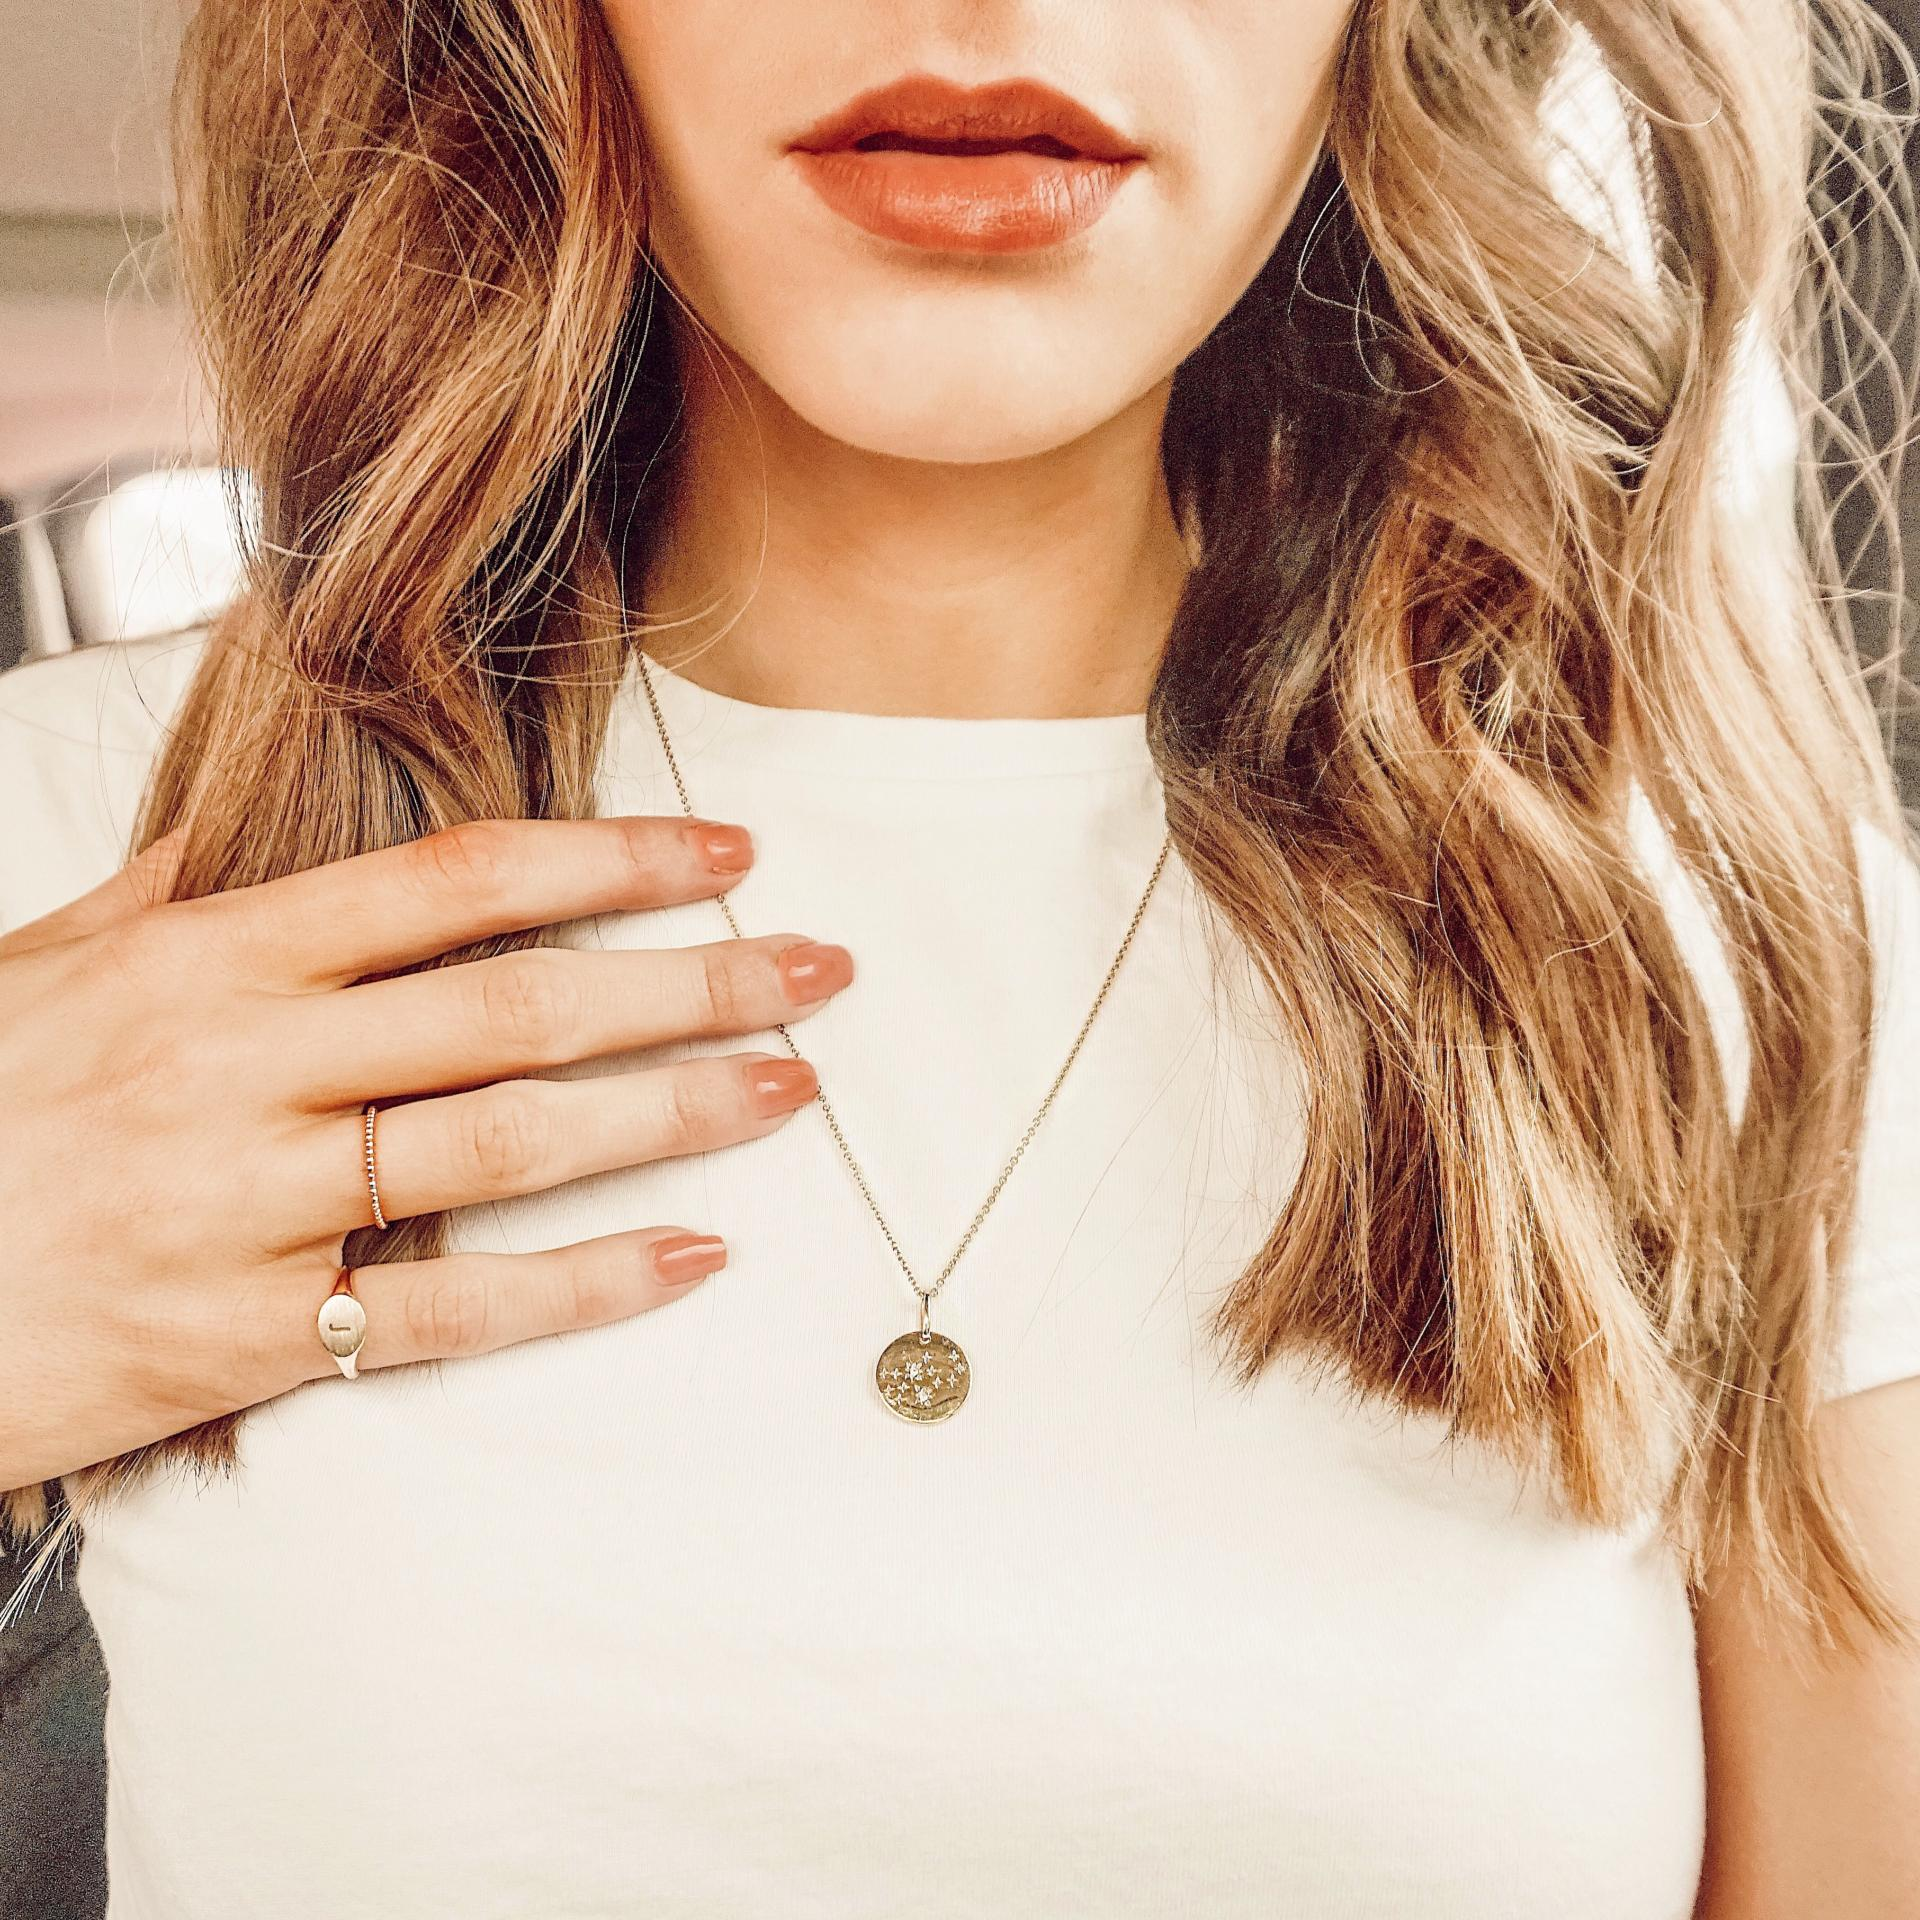 Mejuri Jewelry Review Luxury On A Budget Abby Saylor Armbruster